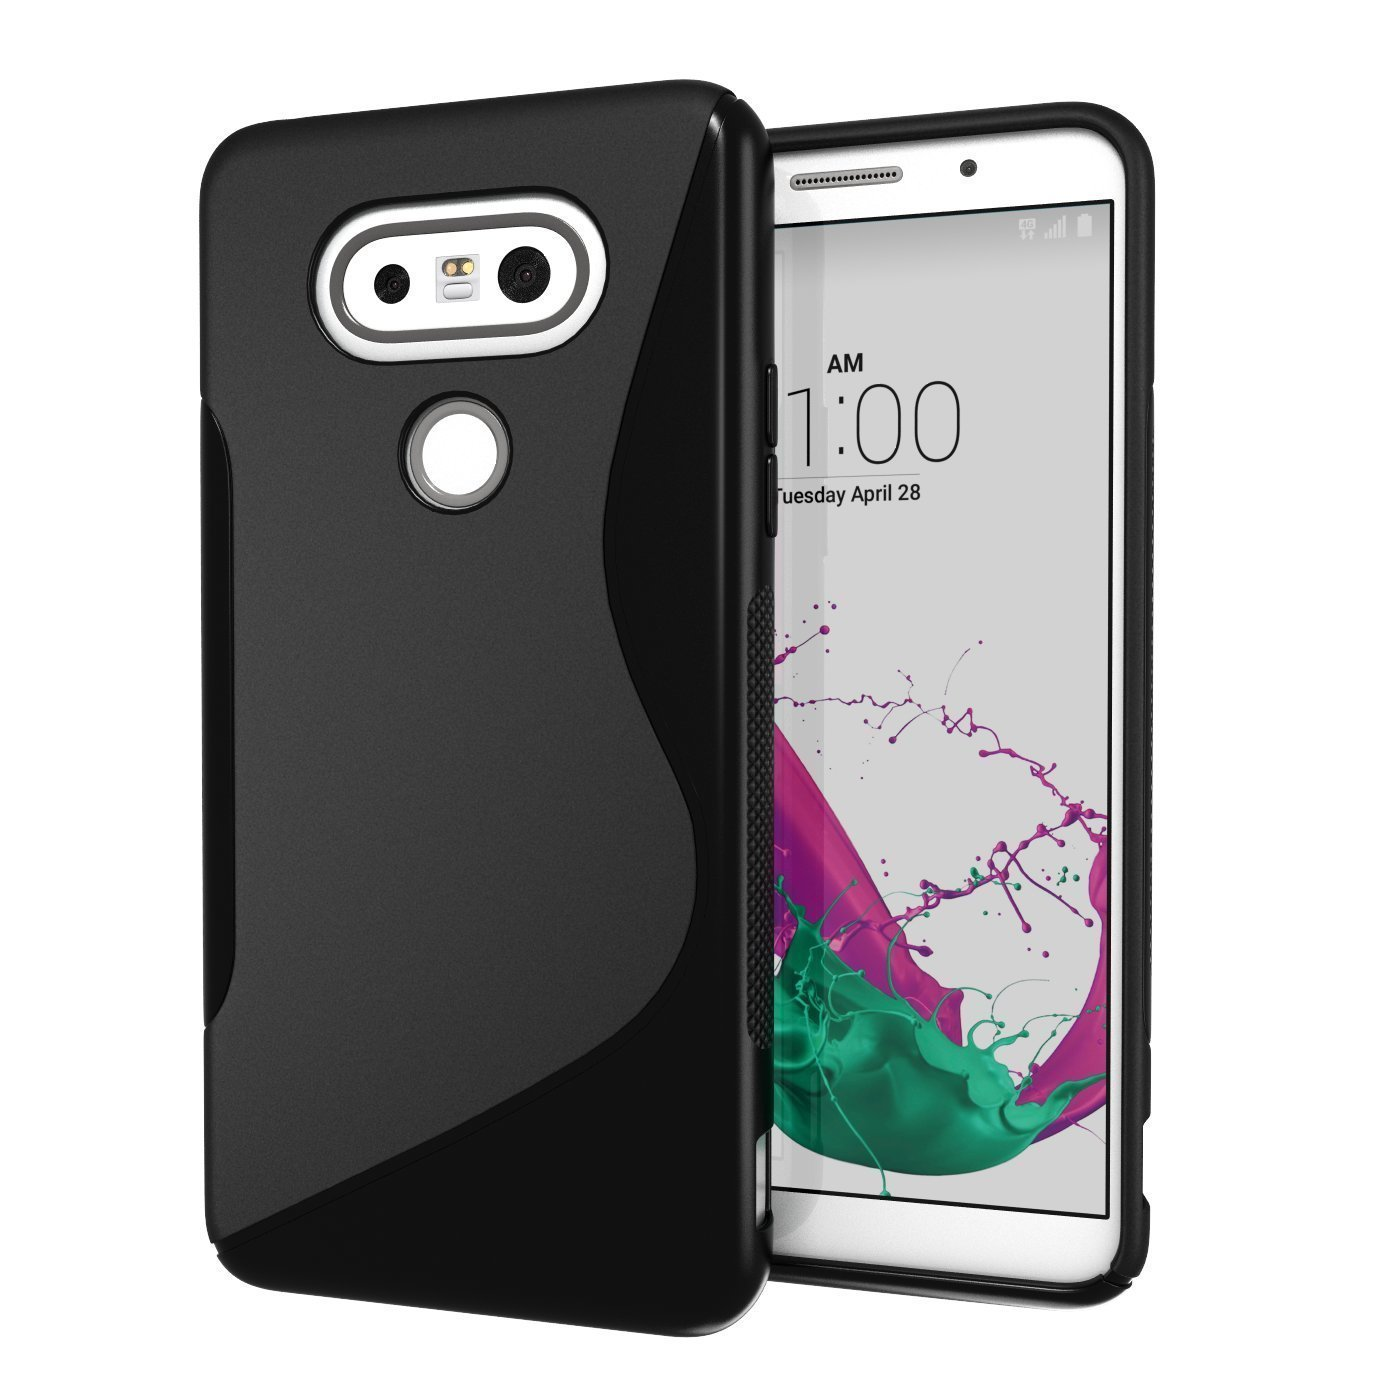 the best attitude c1f3f cf21b Details about LG G5 Black S Line Soft TPU Silicone Gel [Wave Design] Case  Shock Resistant